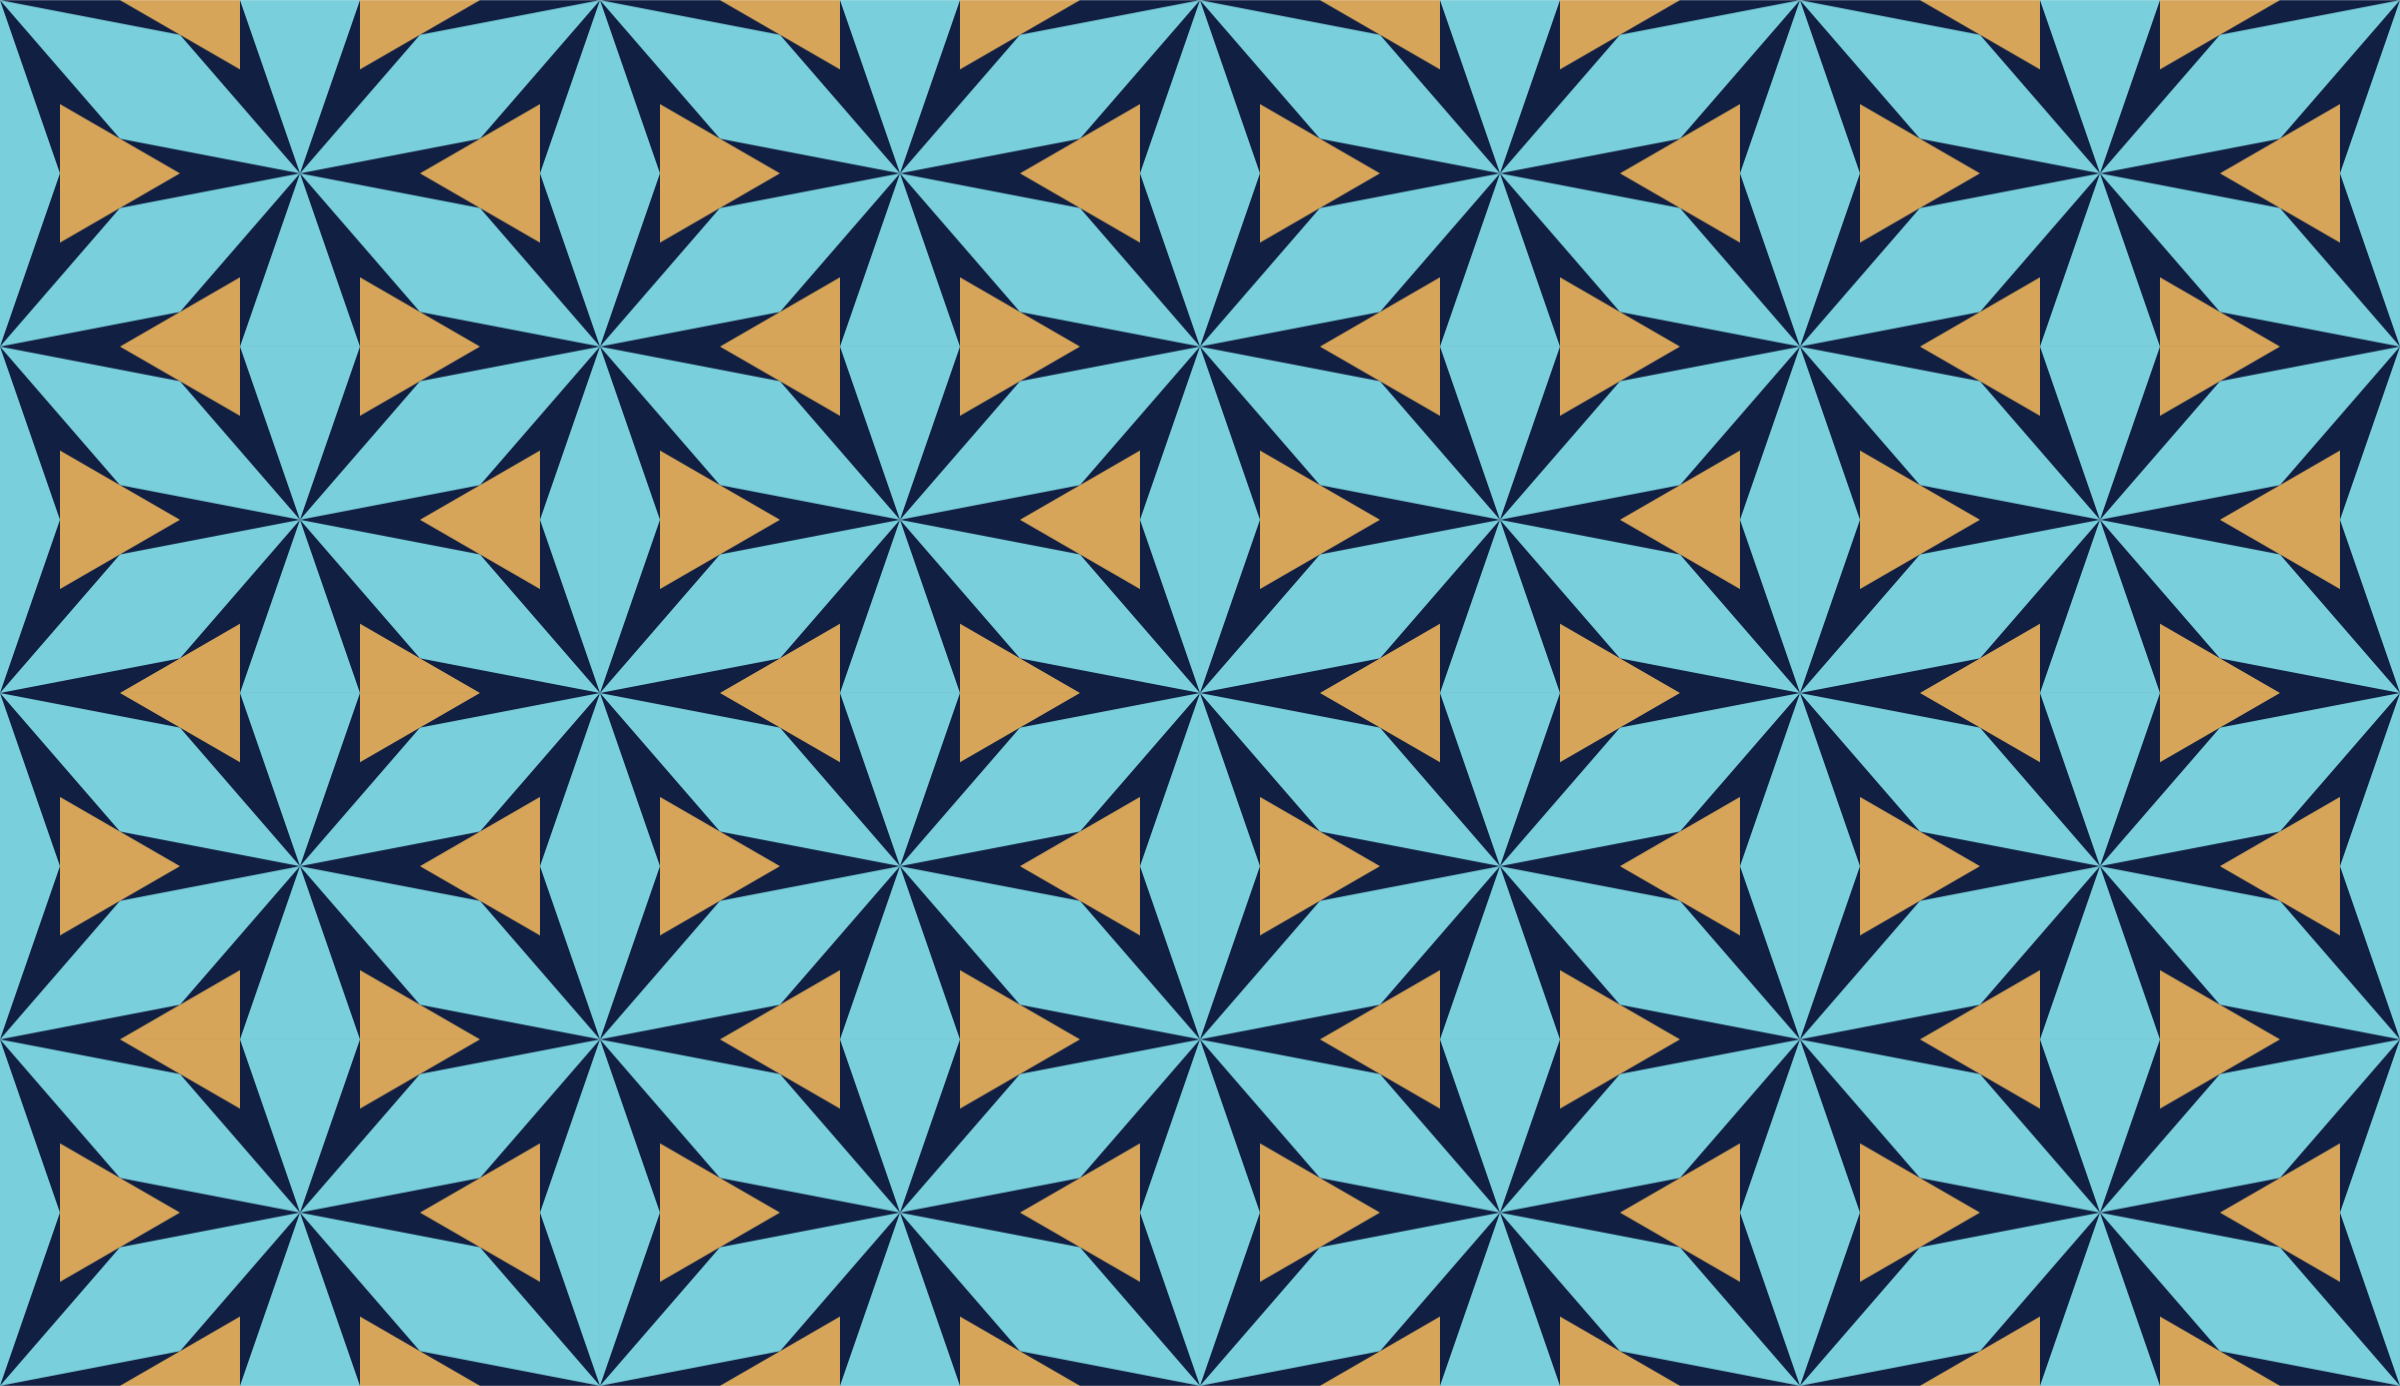 Tessellation 15 (colour) by Firkin